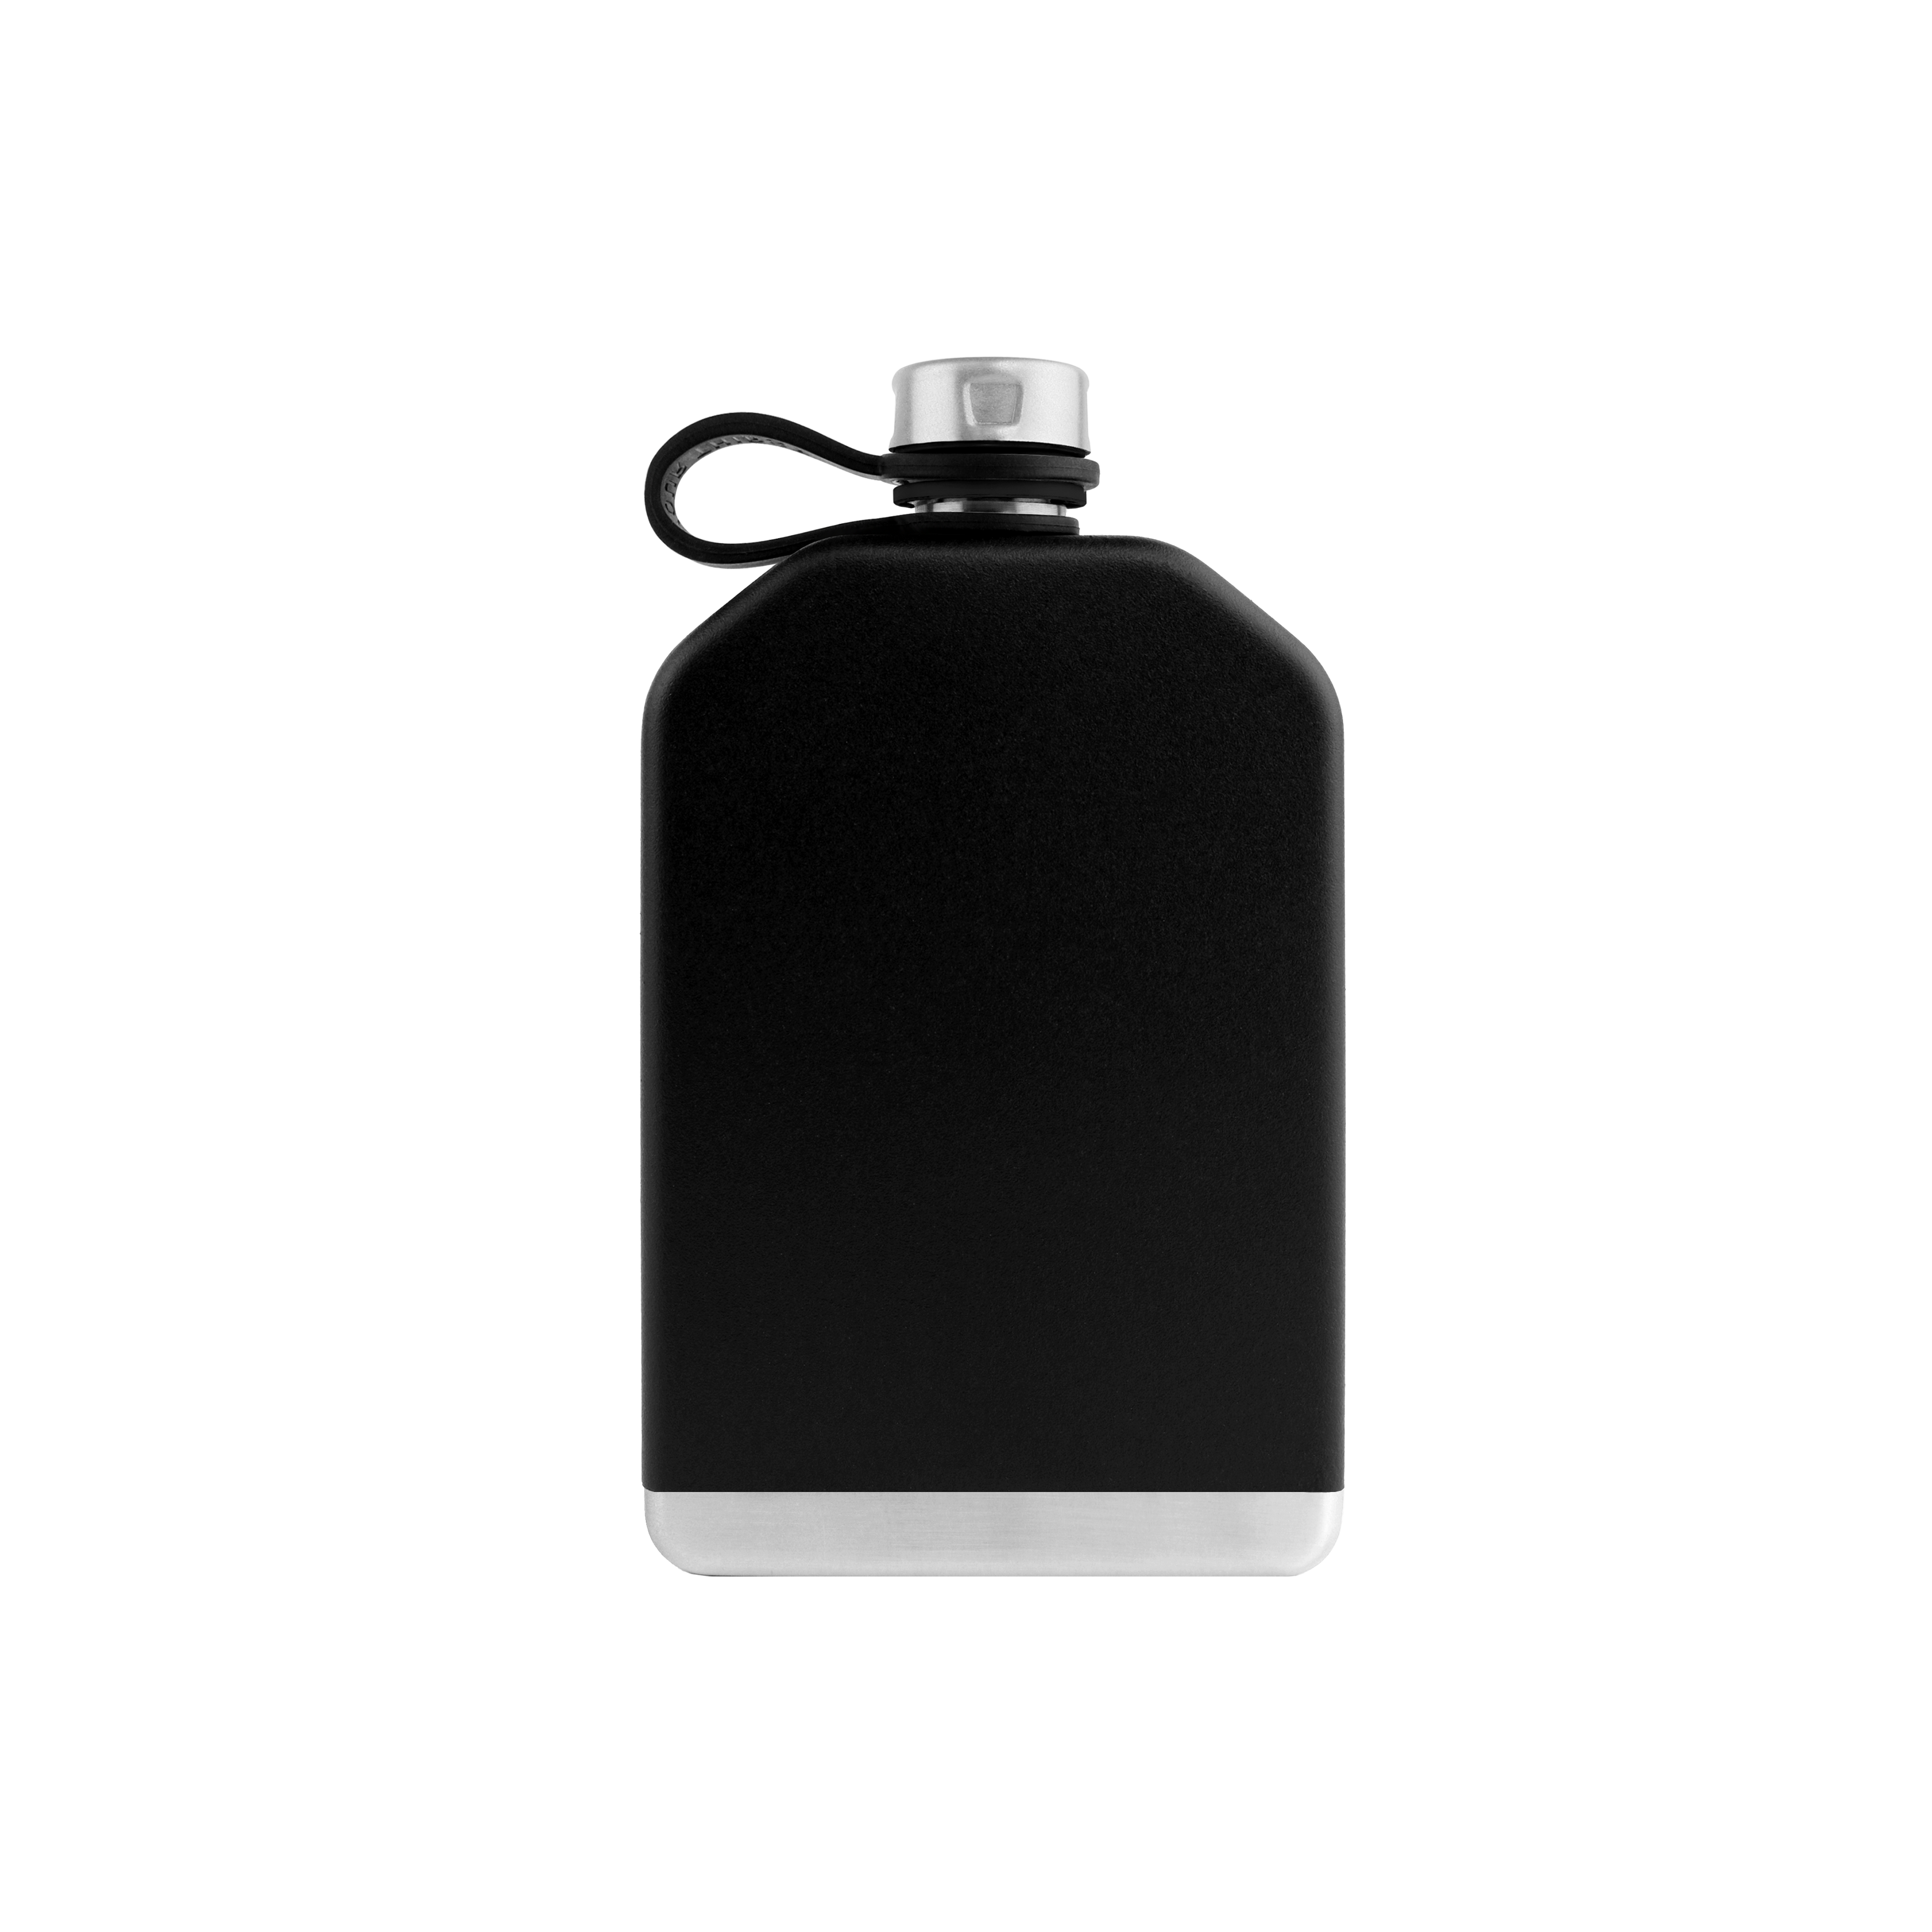 8oz Stainless Steel Flask